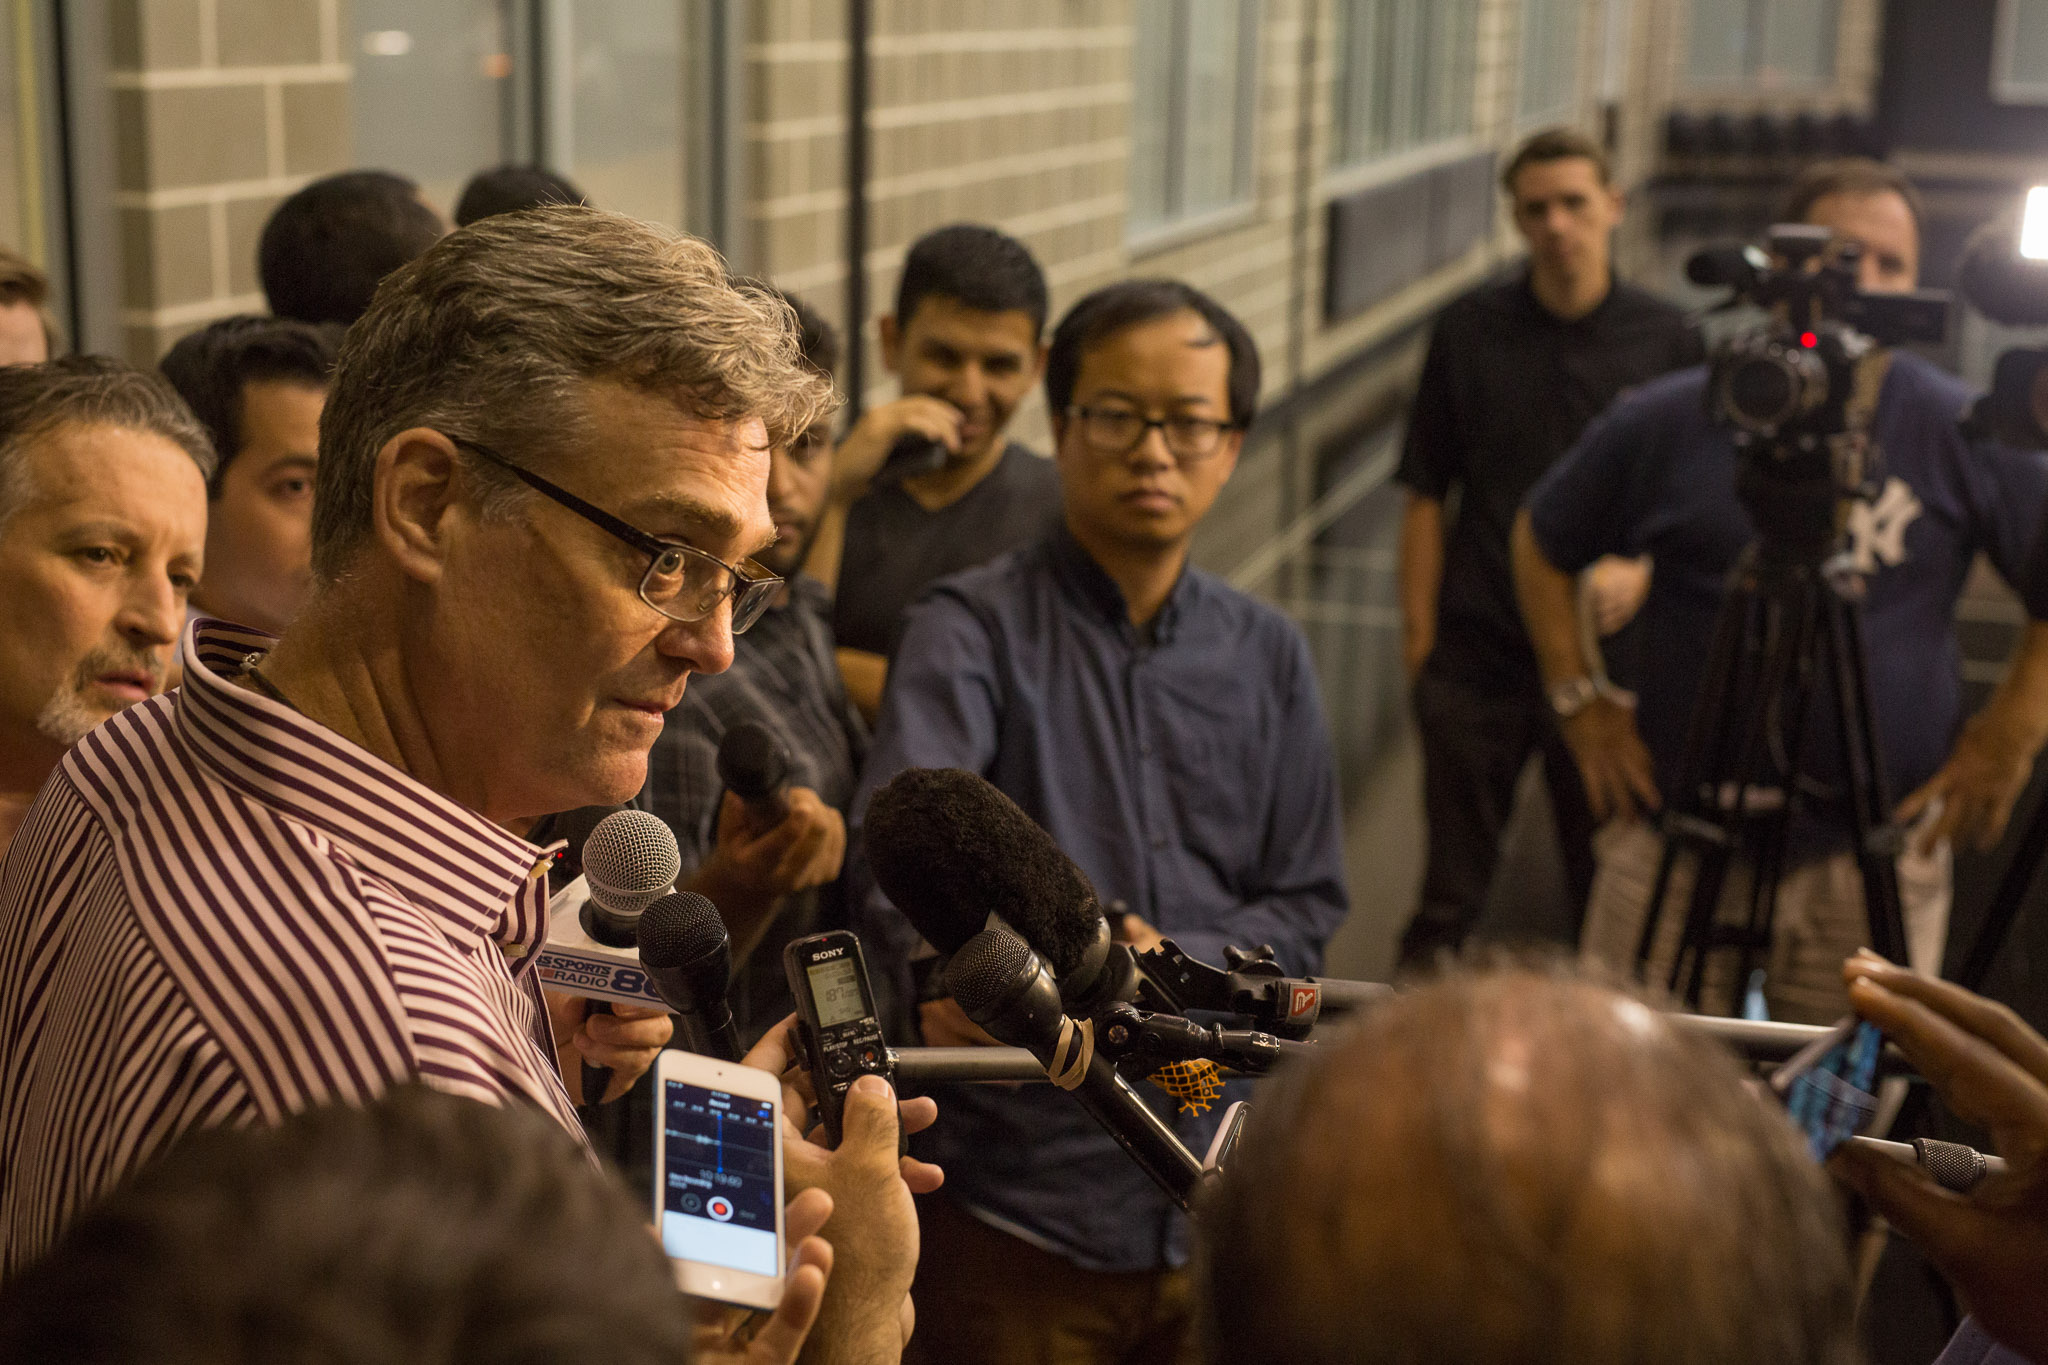 San Antonio Spurs General Manager RC Buford is interviewed by reporters after the announcement of the 29th draft pick Dejounte Murray. Photo by Scott Ball.